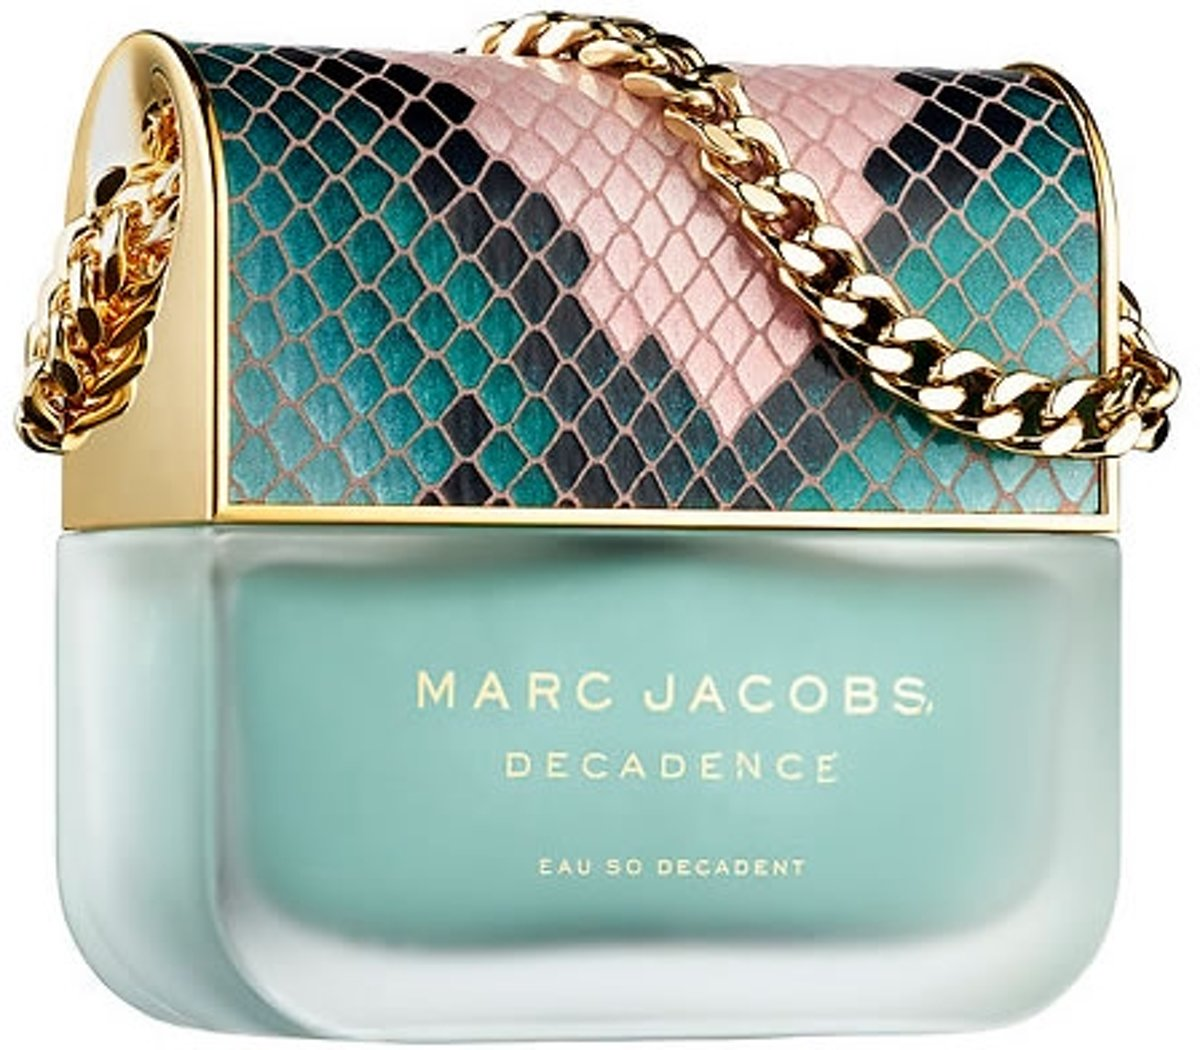 Marc Jacobs - Eau de toilette - Decadence Eau So Decadent - 100 ml